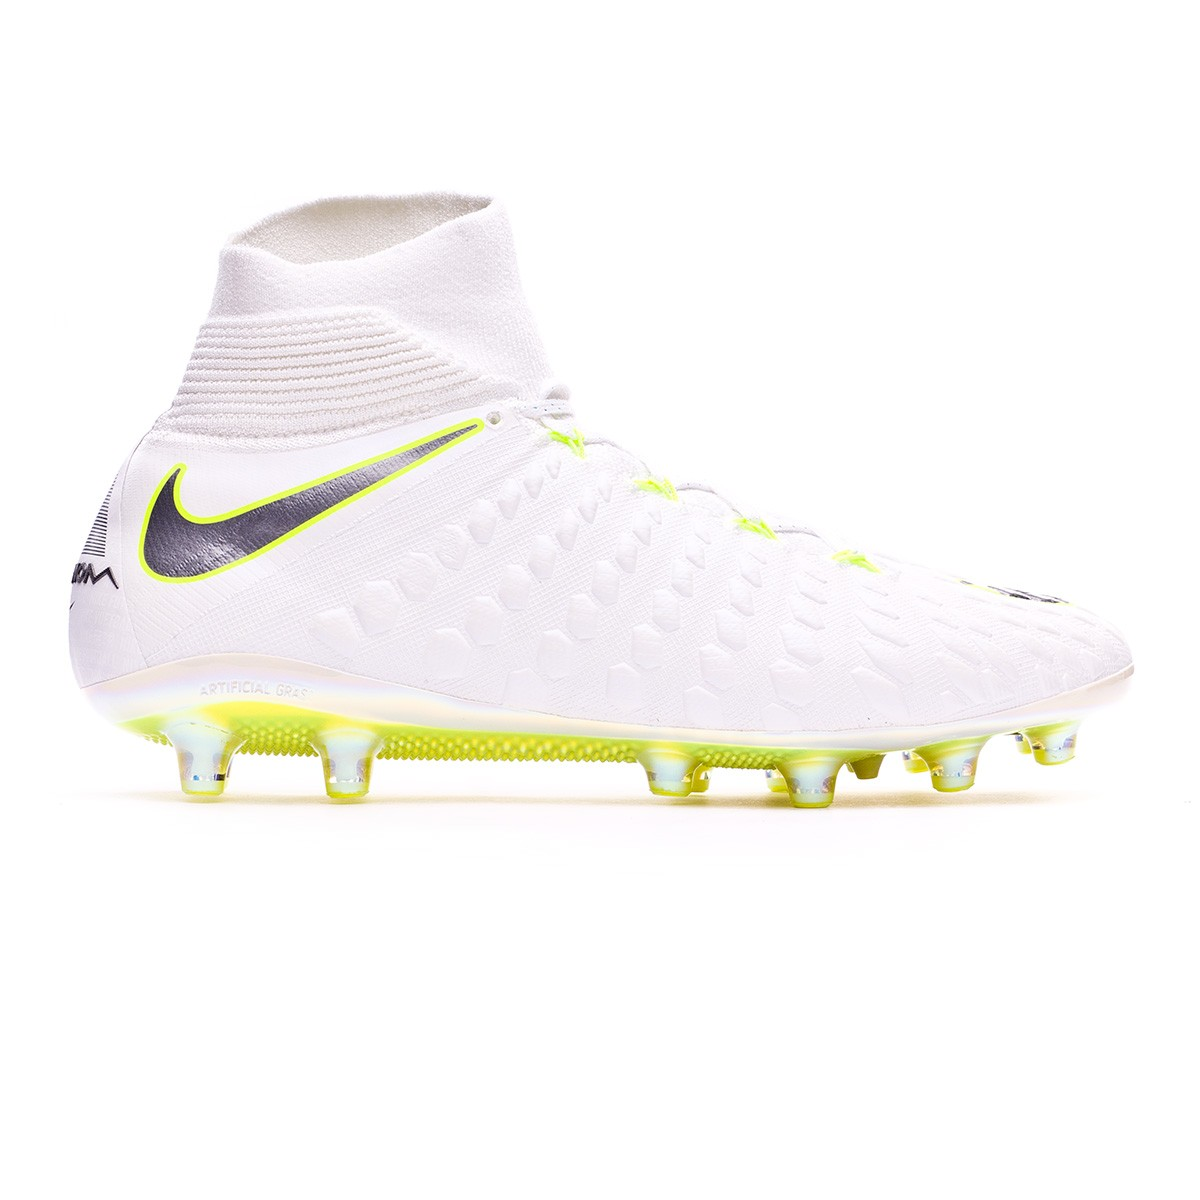 743511a5dec Football Boots Nike Hypervenom Phantom III Elite DF AG-Pro White-Metallic  cool grey-Volt-Metallic cool g - Football store Fútbol Emotion